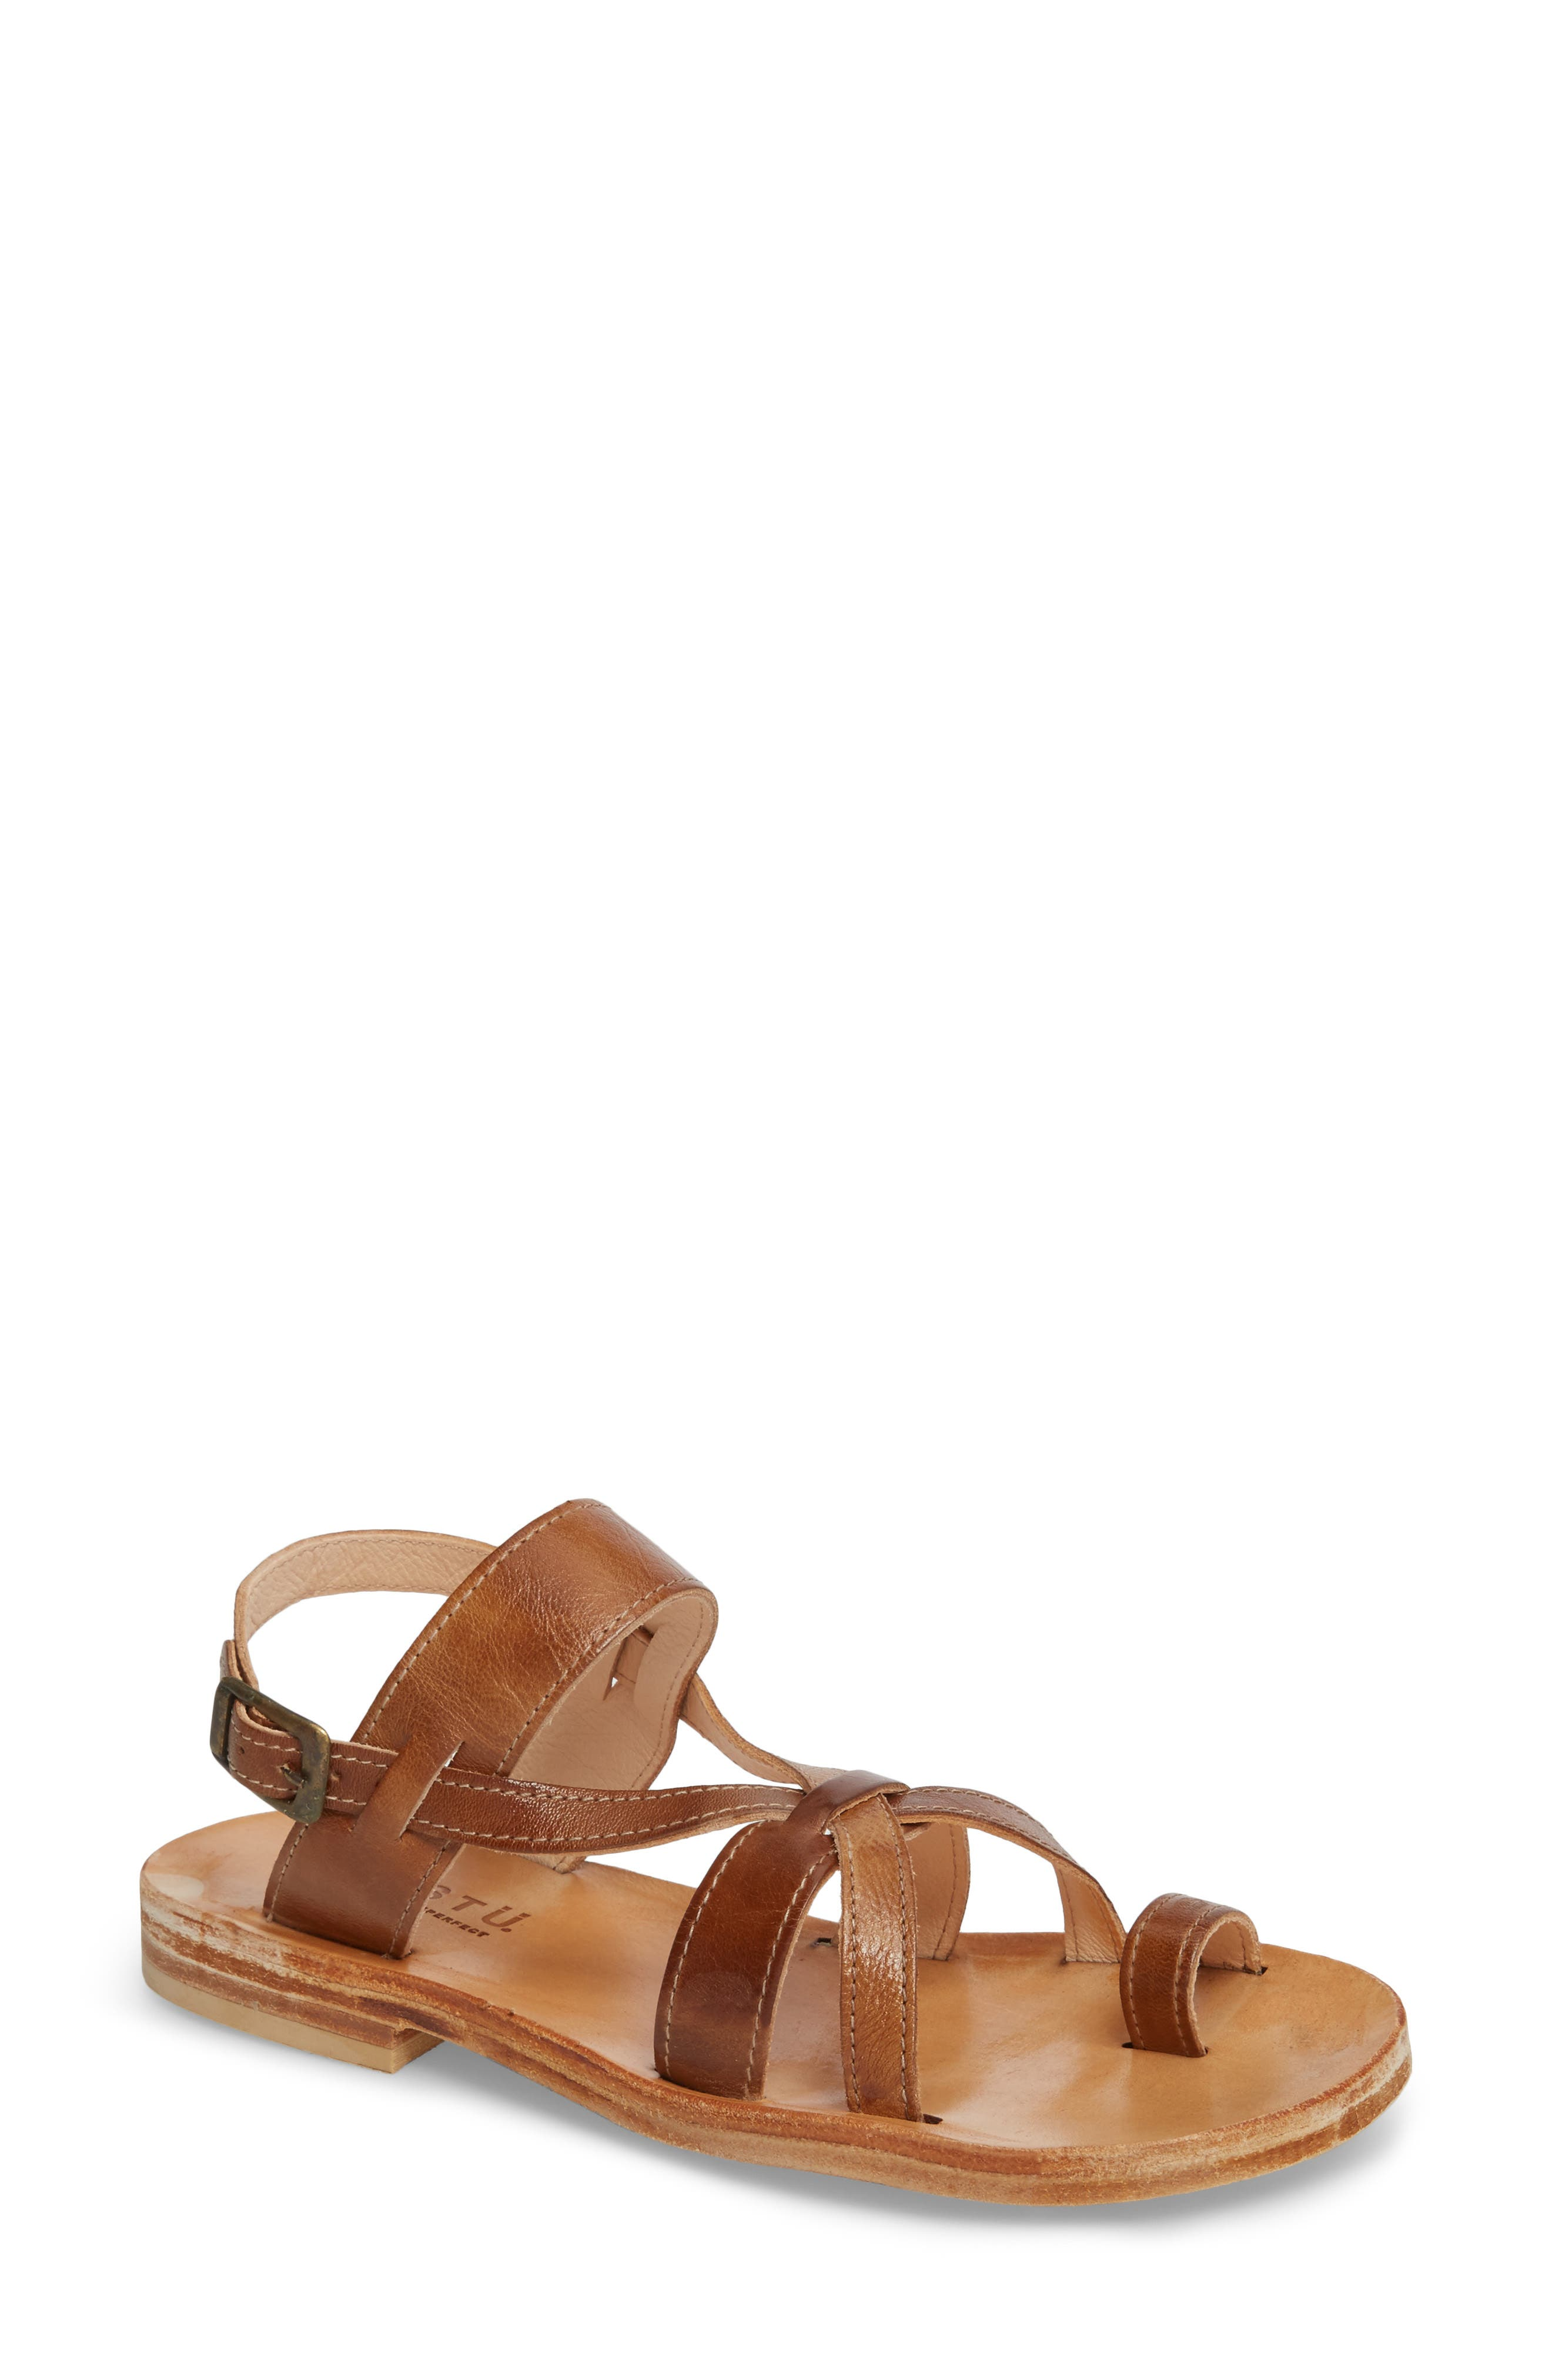 Bed Stu Manati Sandal (Women)